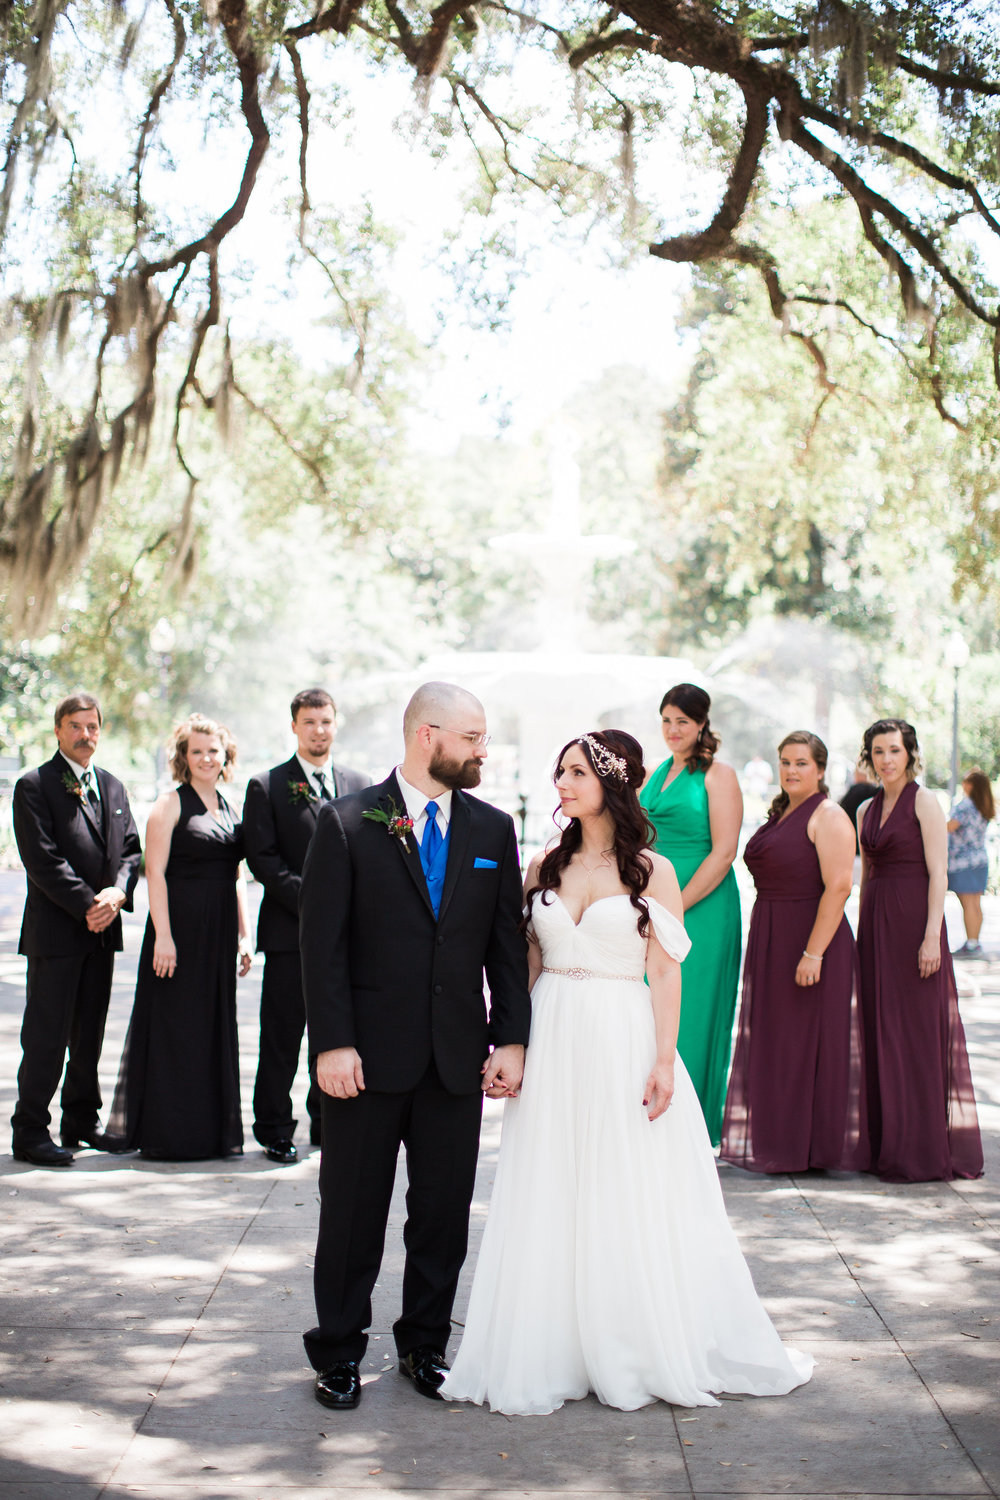 ari-merritt-photography-ivory-and-beau-bridal-boutique-sarah-seven-lafayette-savannah-florist-savannah-floral-designer-10-downing-savannah-wedding-southern-wedding-savannah-bridal-boutique-savannah-wedding-dresses-savannah-wedding-planner-9.jpg